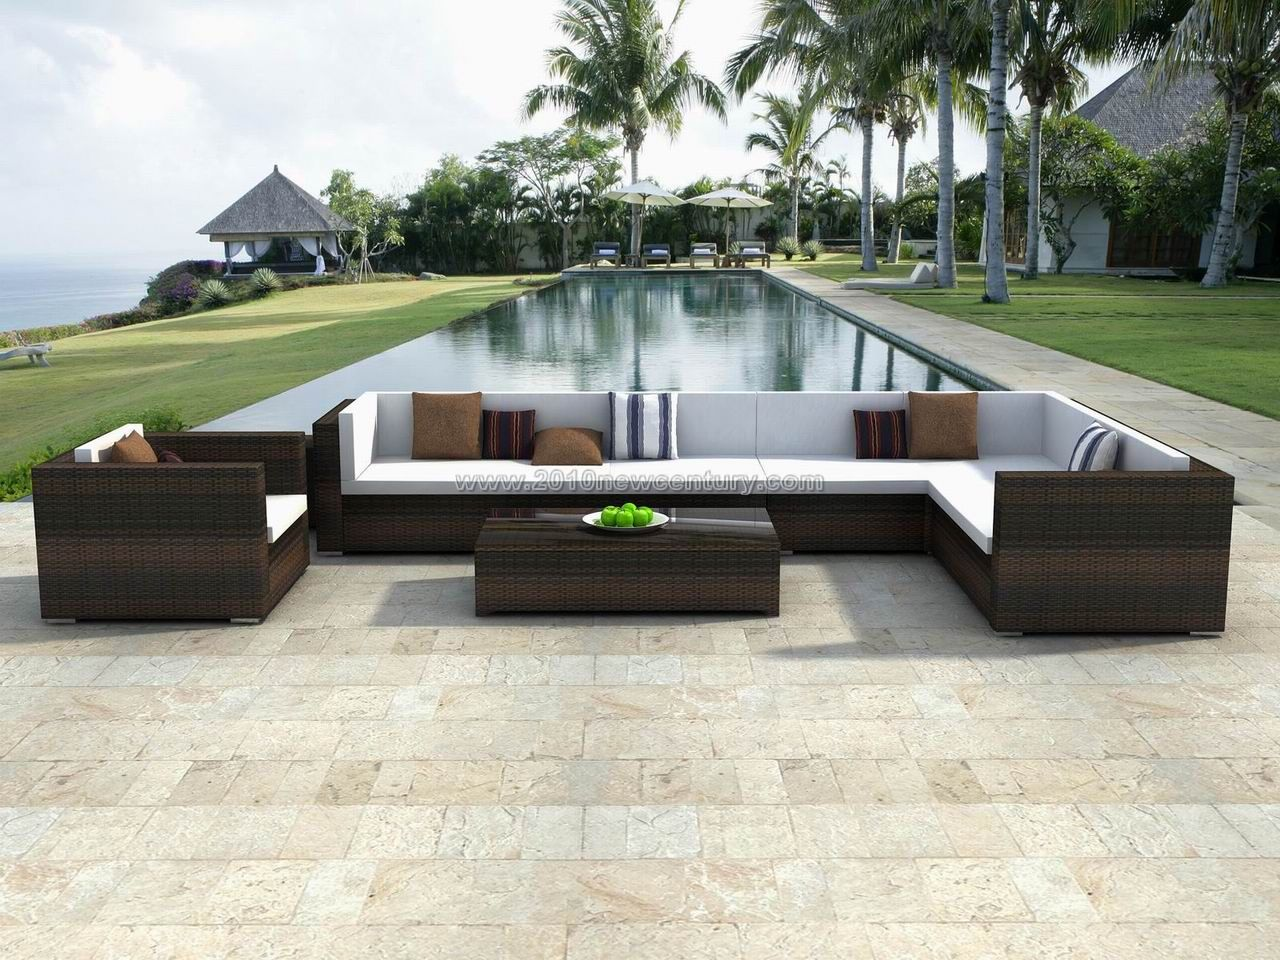 Awesome rattan garden furniture hgnv com for Designer garden furniture